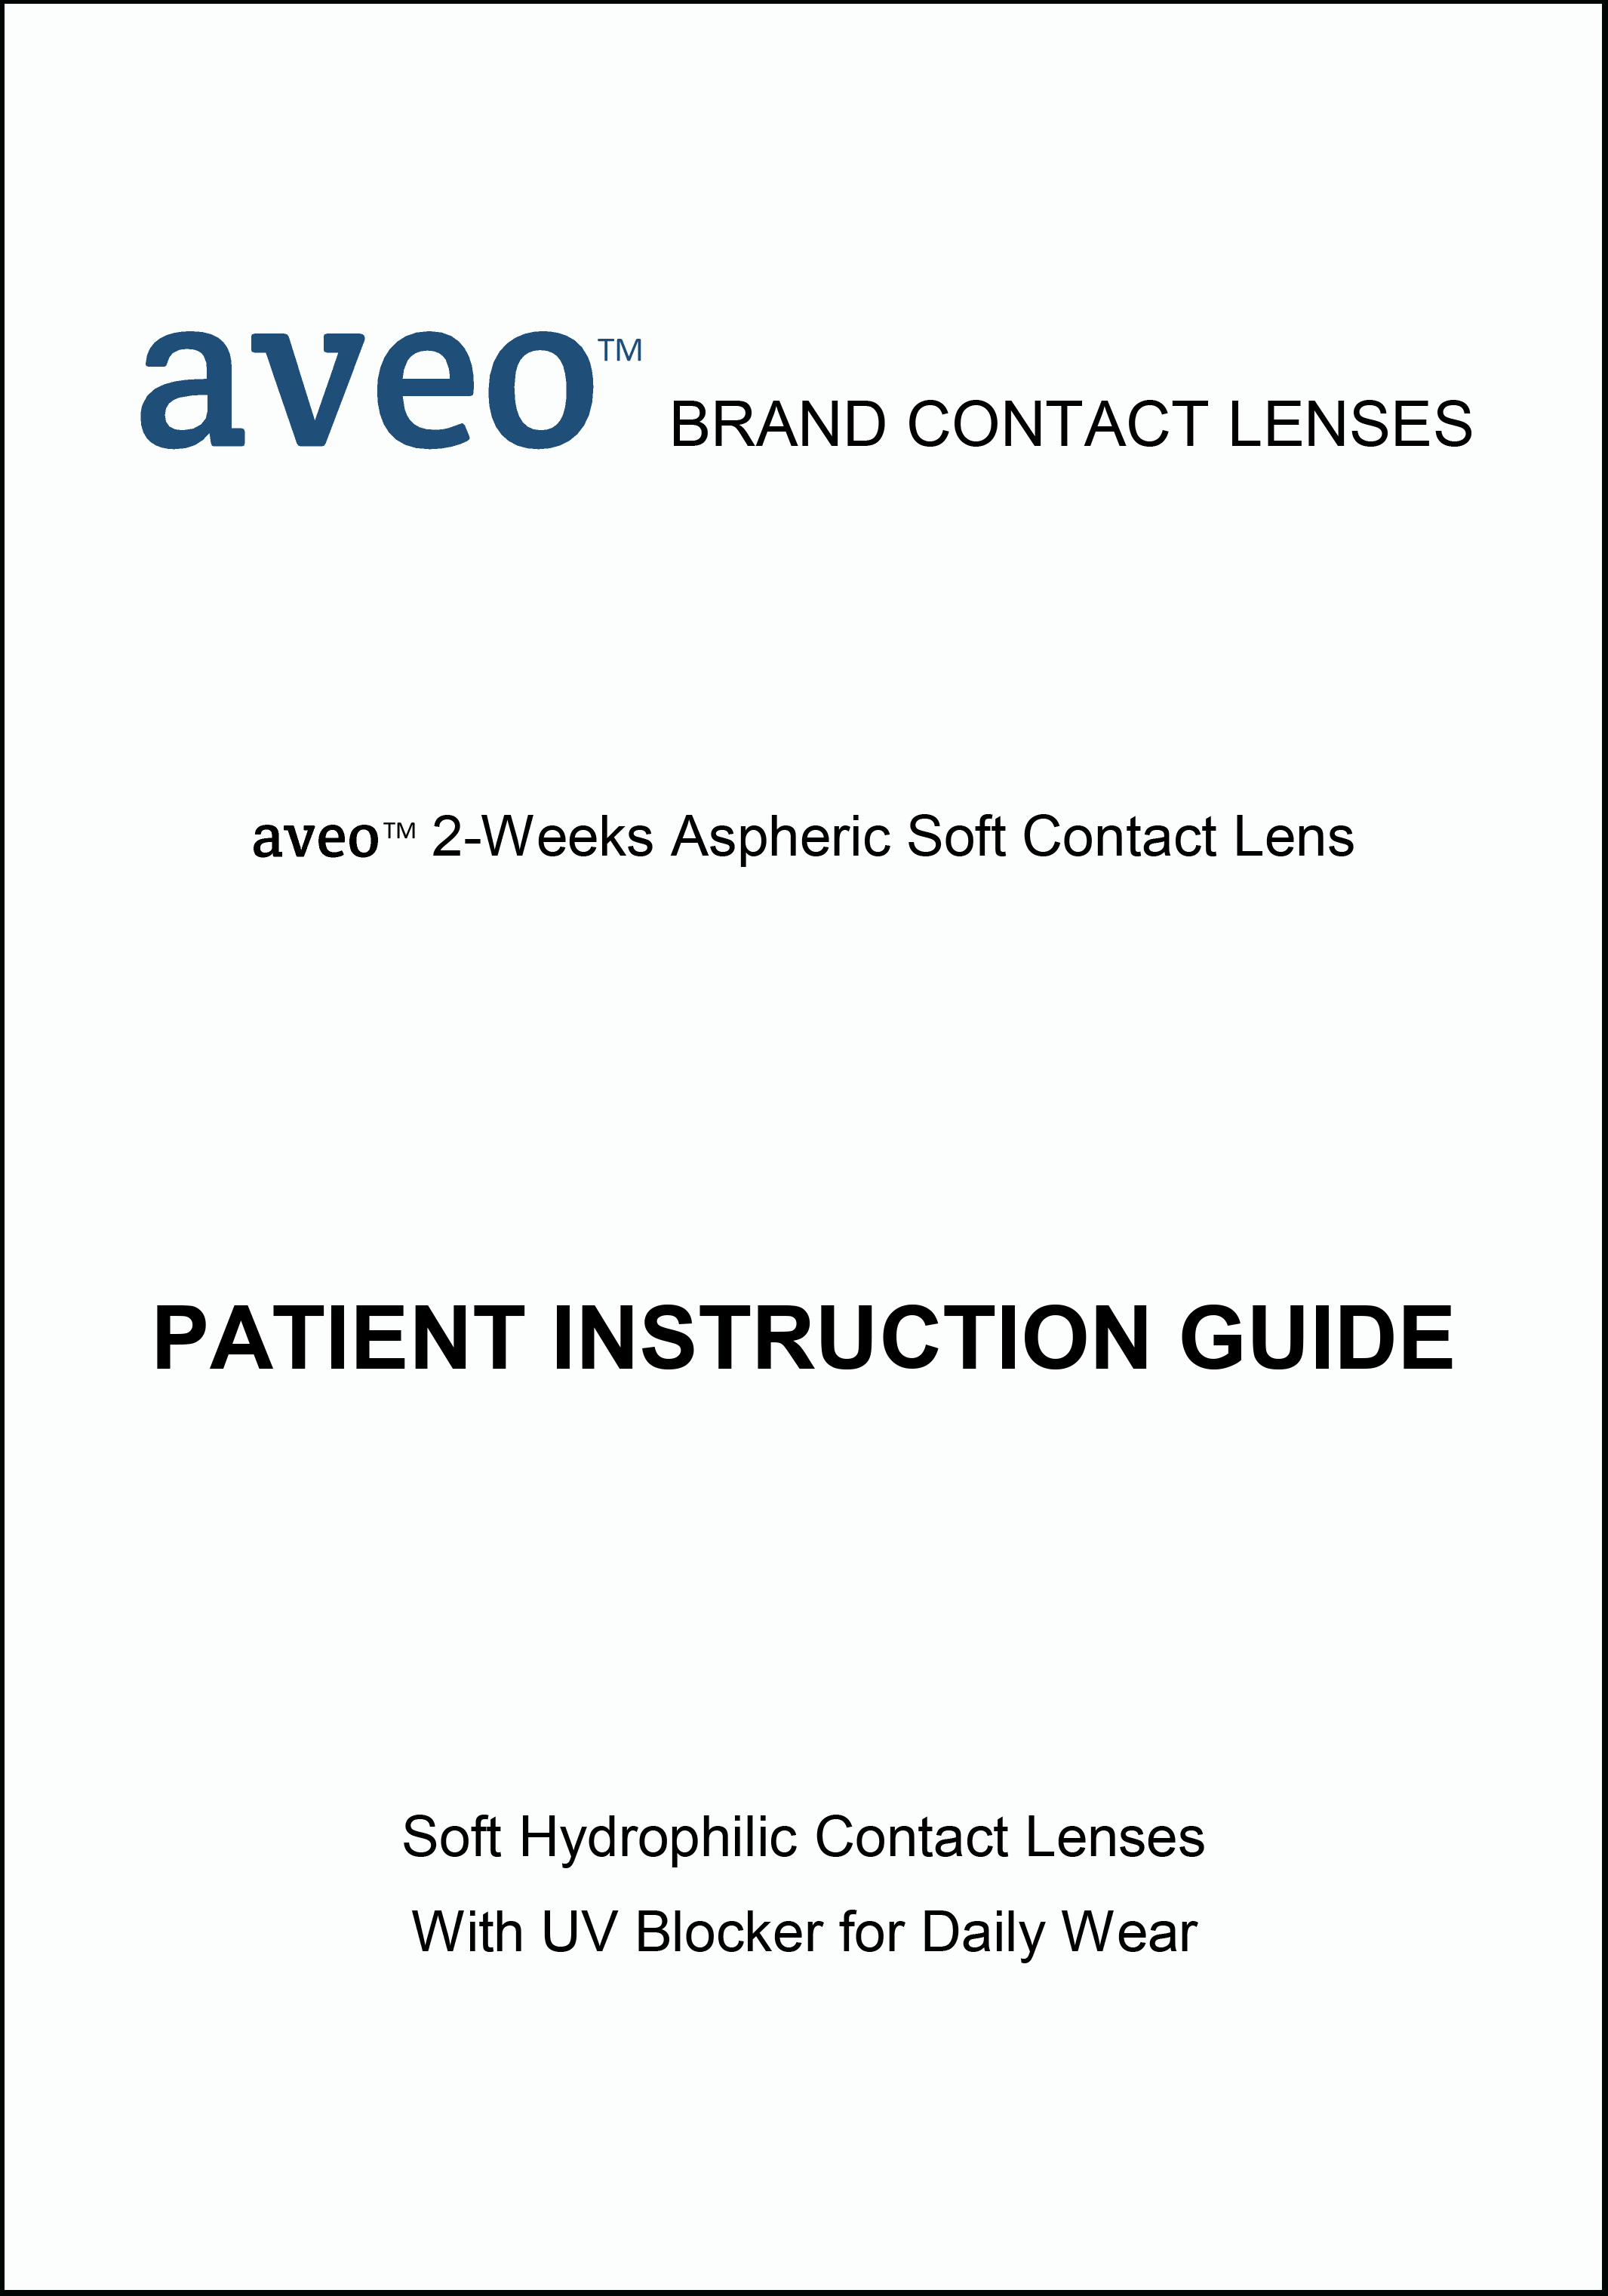 aveo-2-weeks-patient-instruction-guide-cover-page